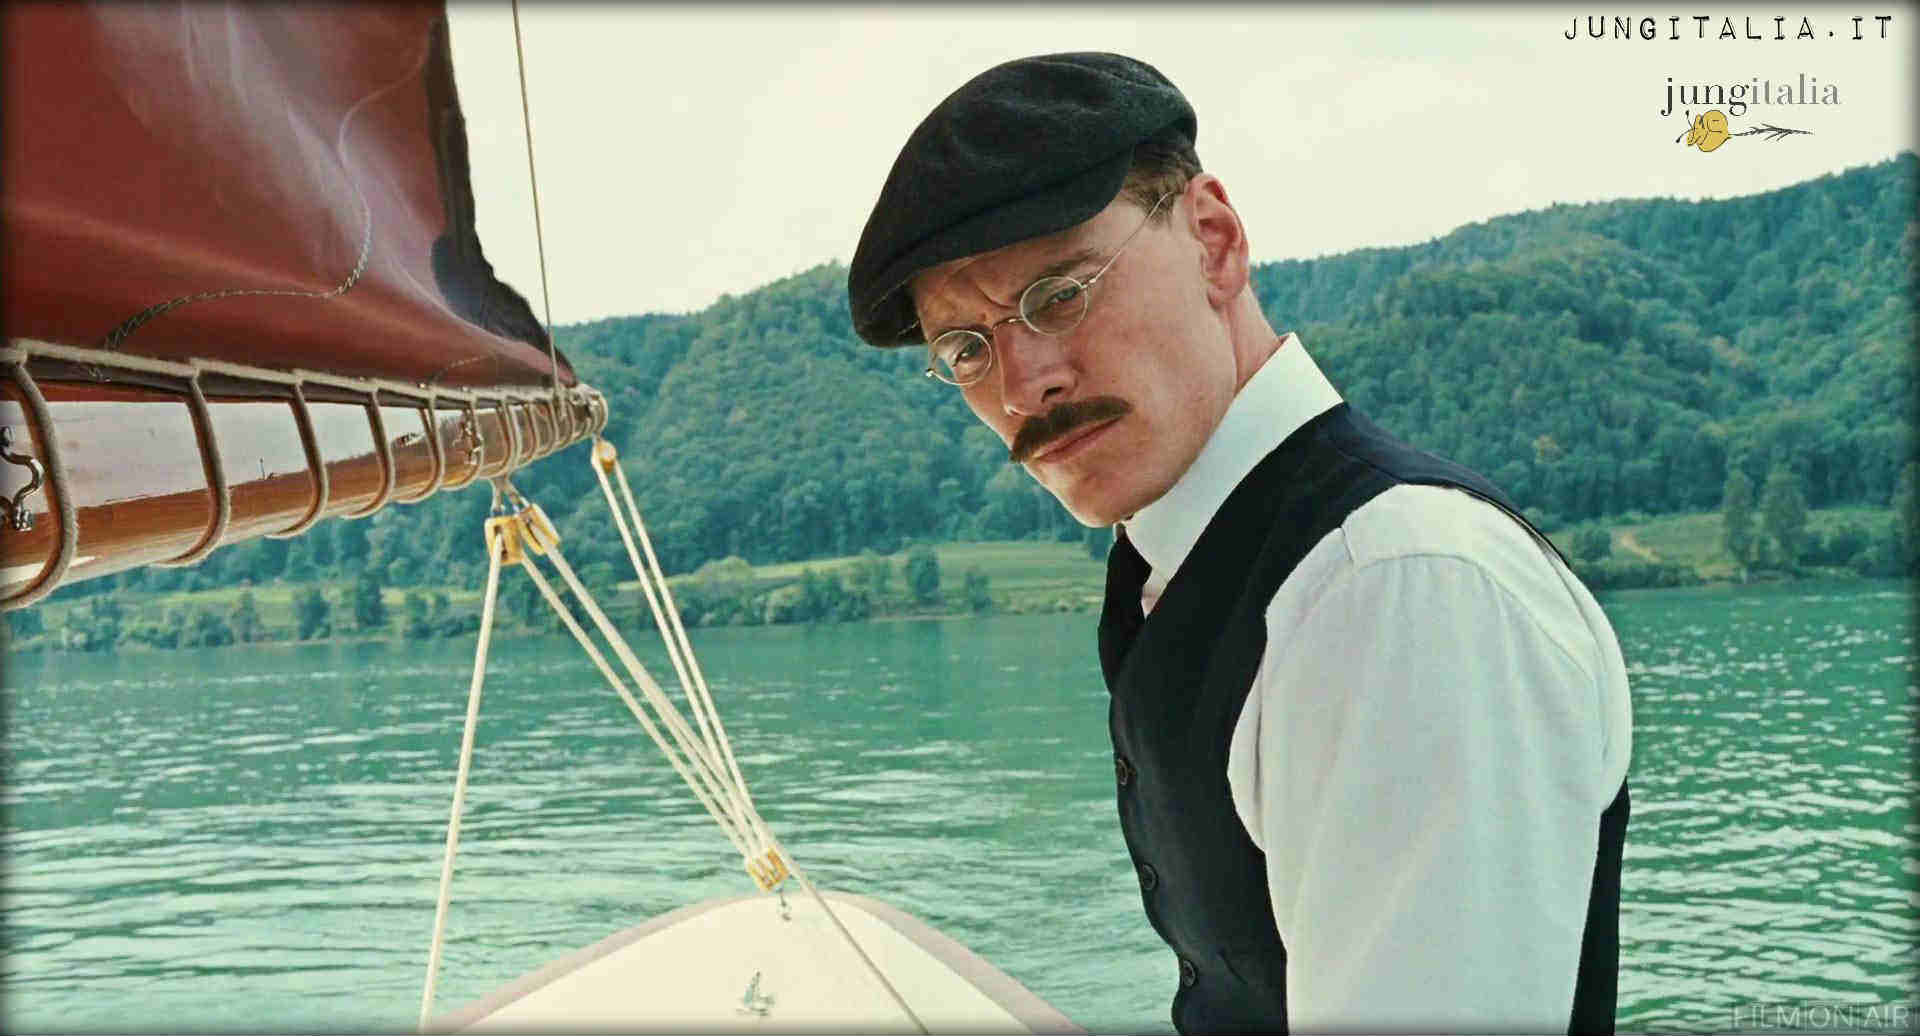 Jung Barca Dangerous Method